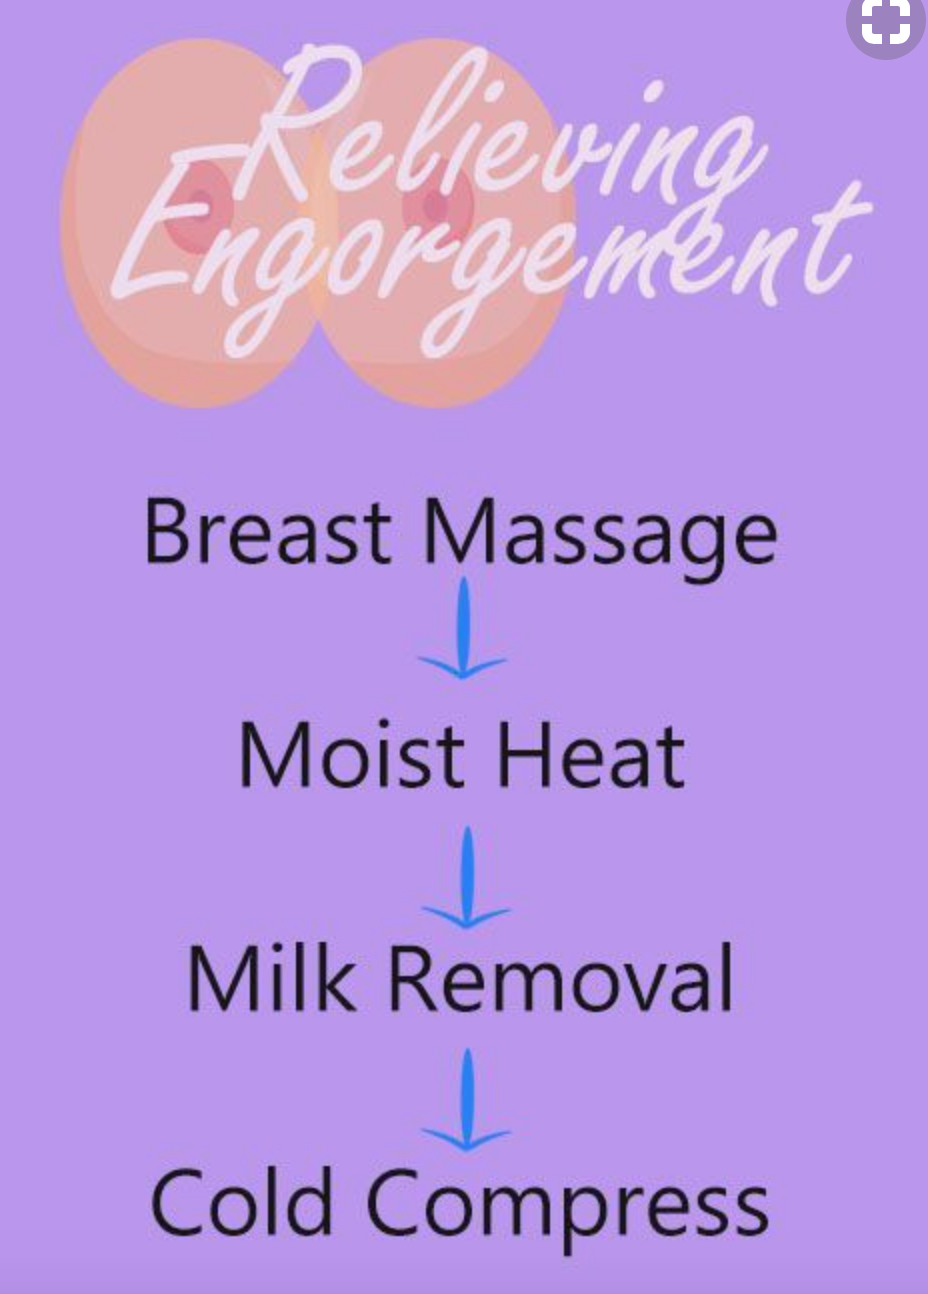 how to relieve engorgement when breastfeeding challenges newborn postpartum new mom